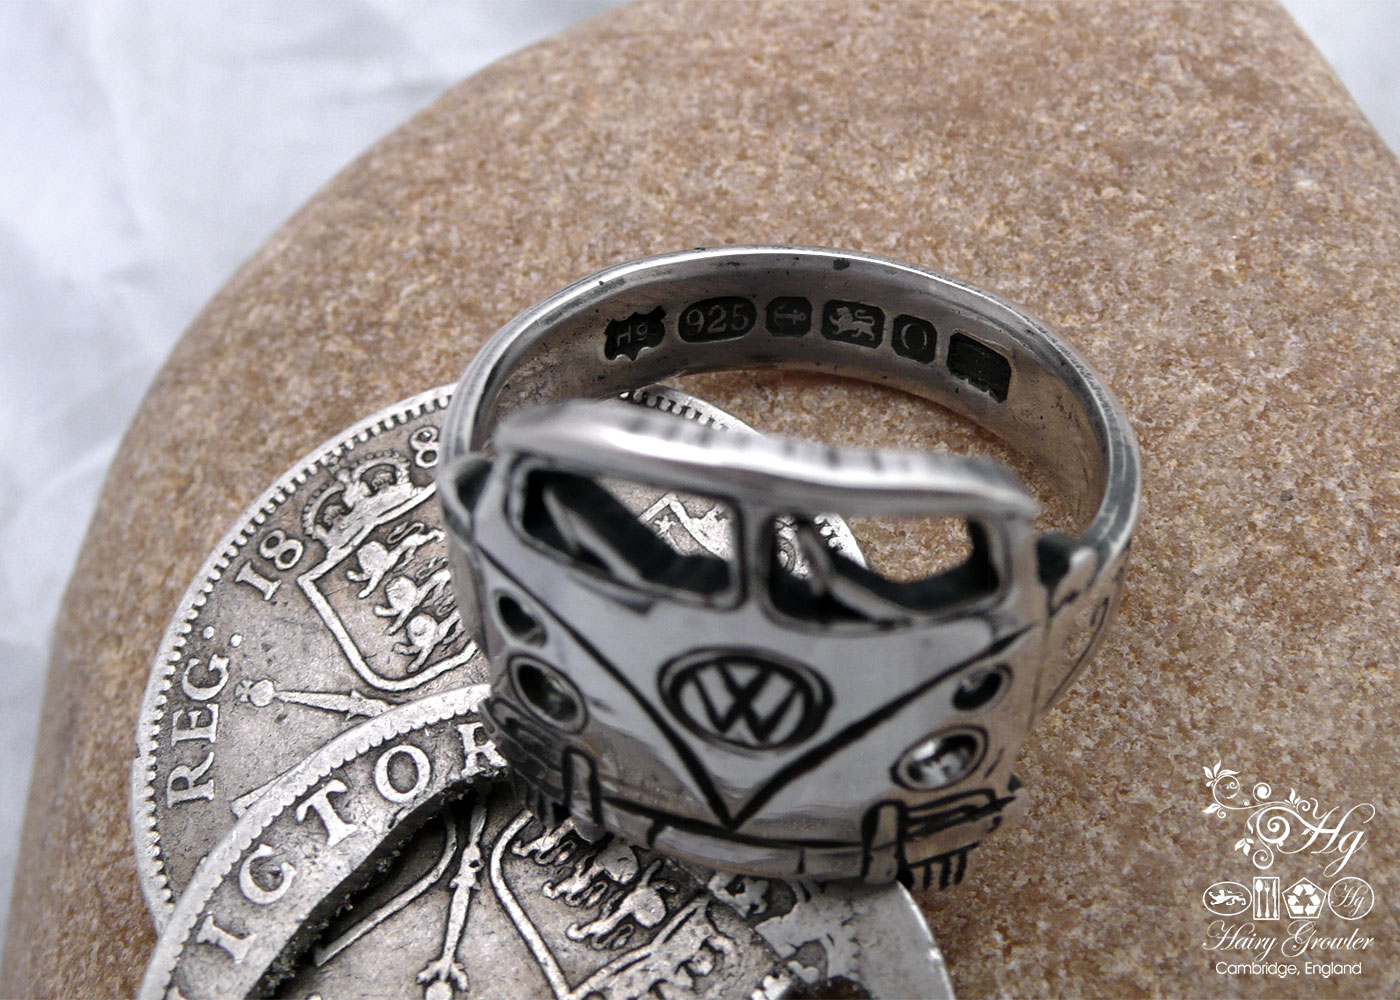 handcrafted and recycled silver coin splitty split screen campervan surf bus vw ring